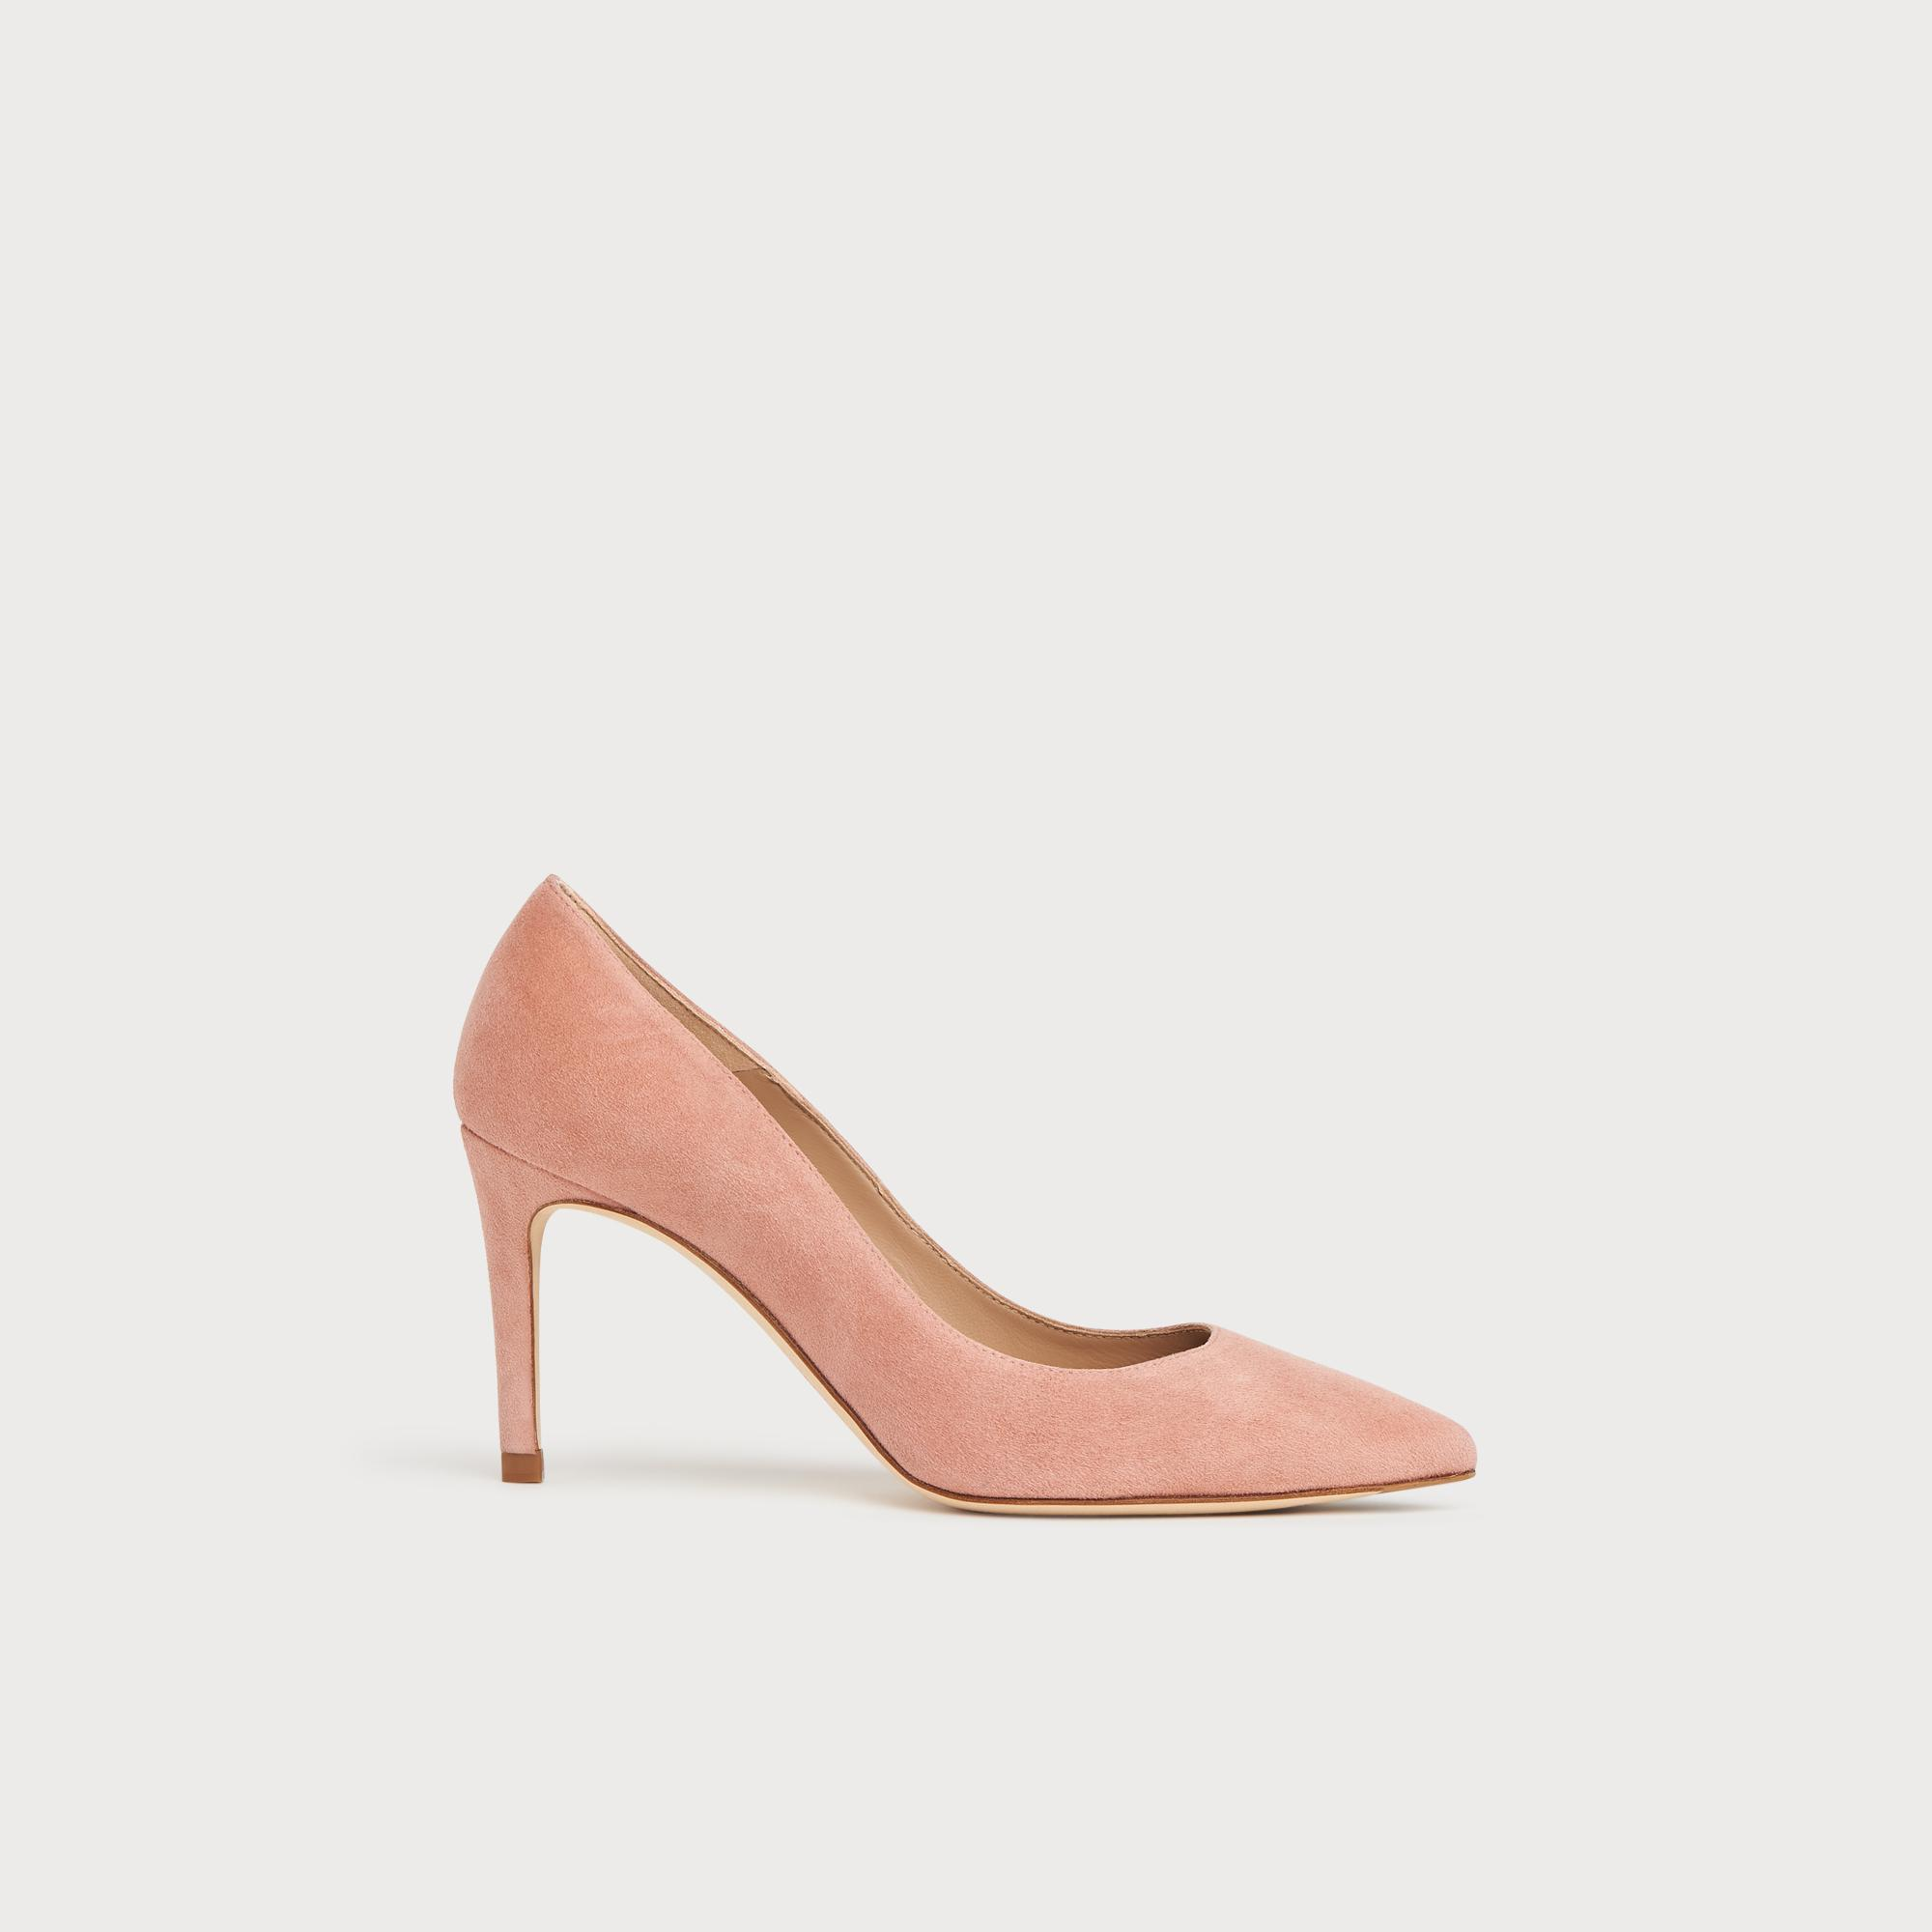 Floret Pink Suede Pointed Toe Courts